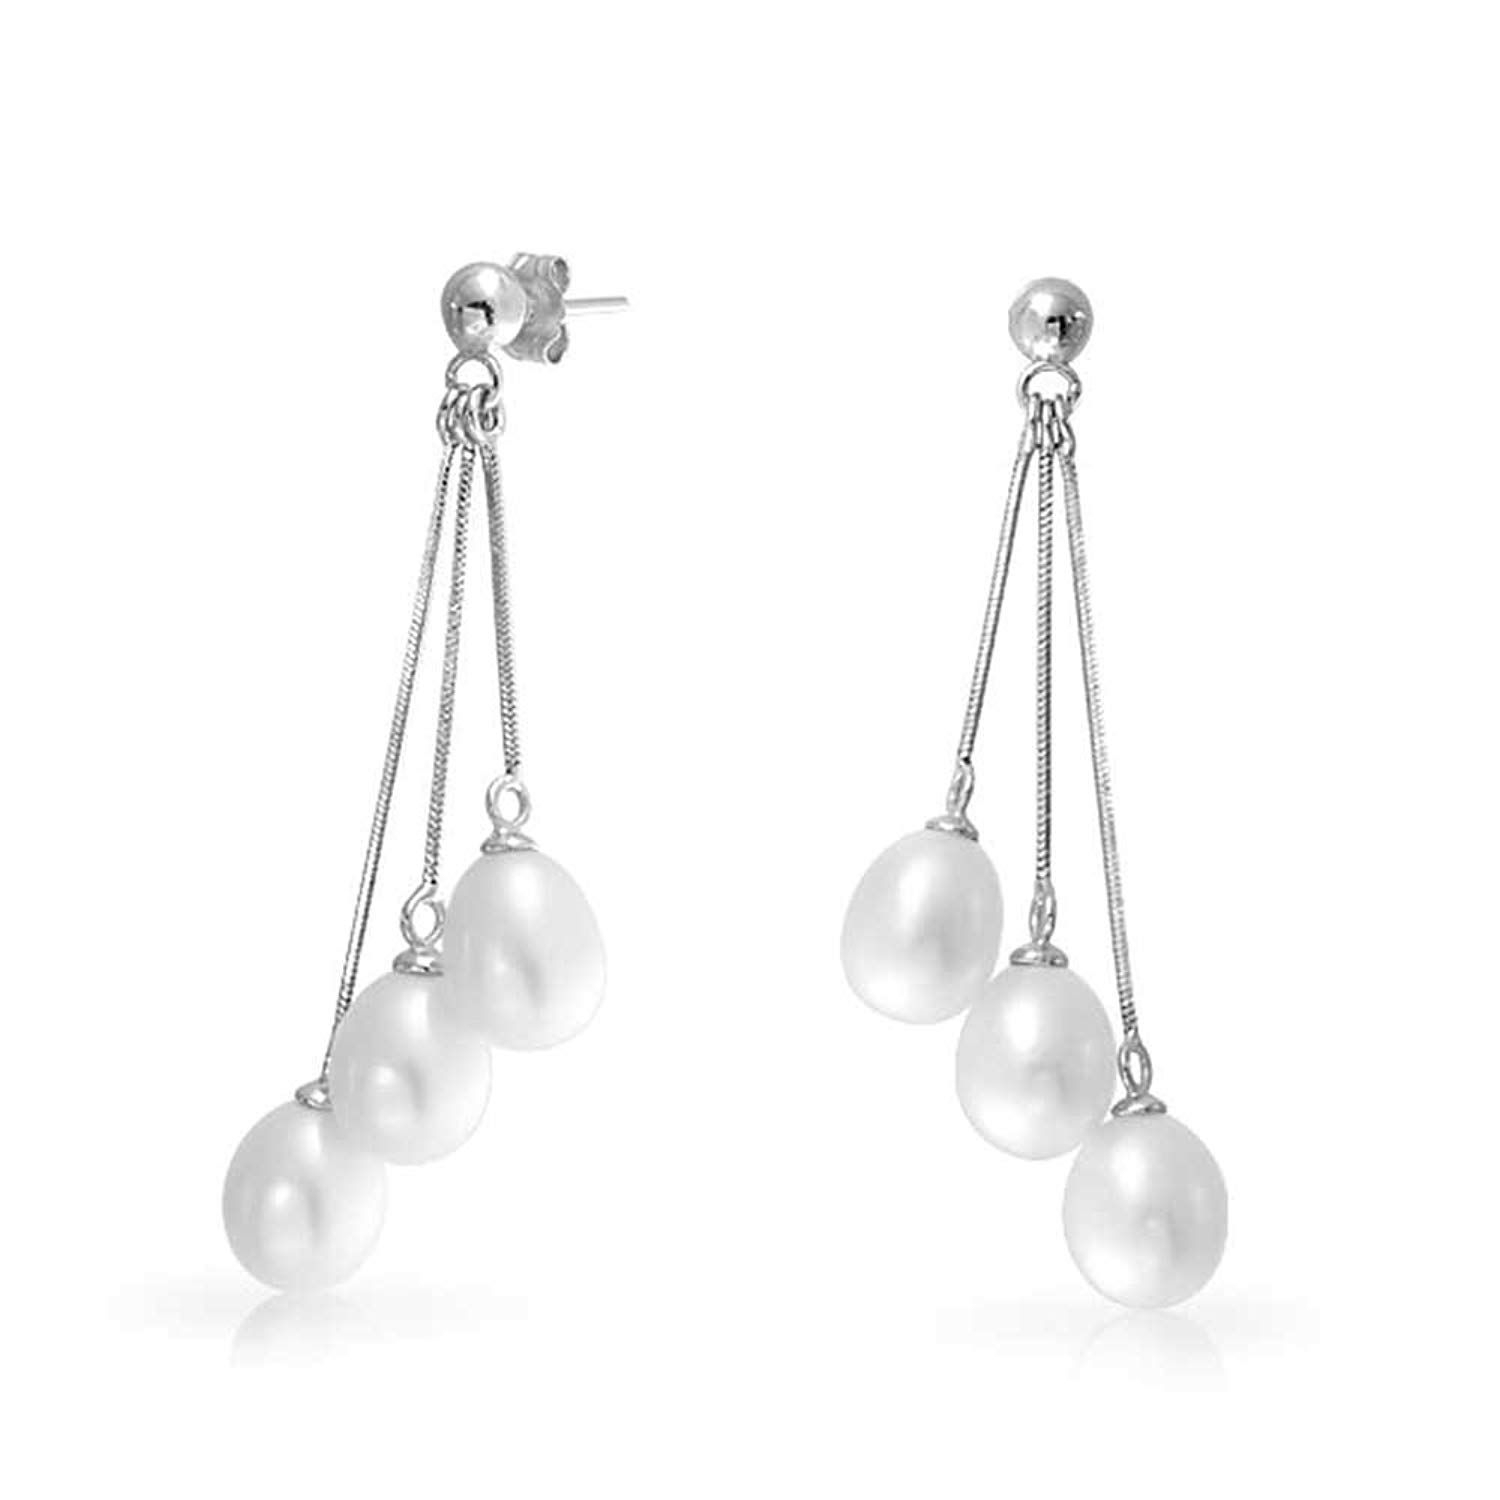 Bling Jewelry Multi Strand Freshwater Cultured Pearl Sterling Silver Throughout Most Recently Released Dangling Freshwater Cultured Pearl Rings (View 2 of 25)